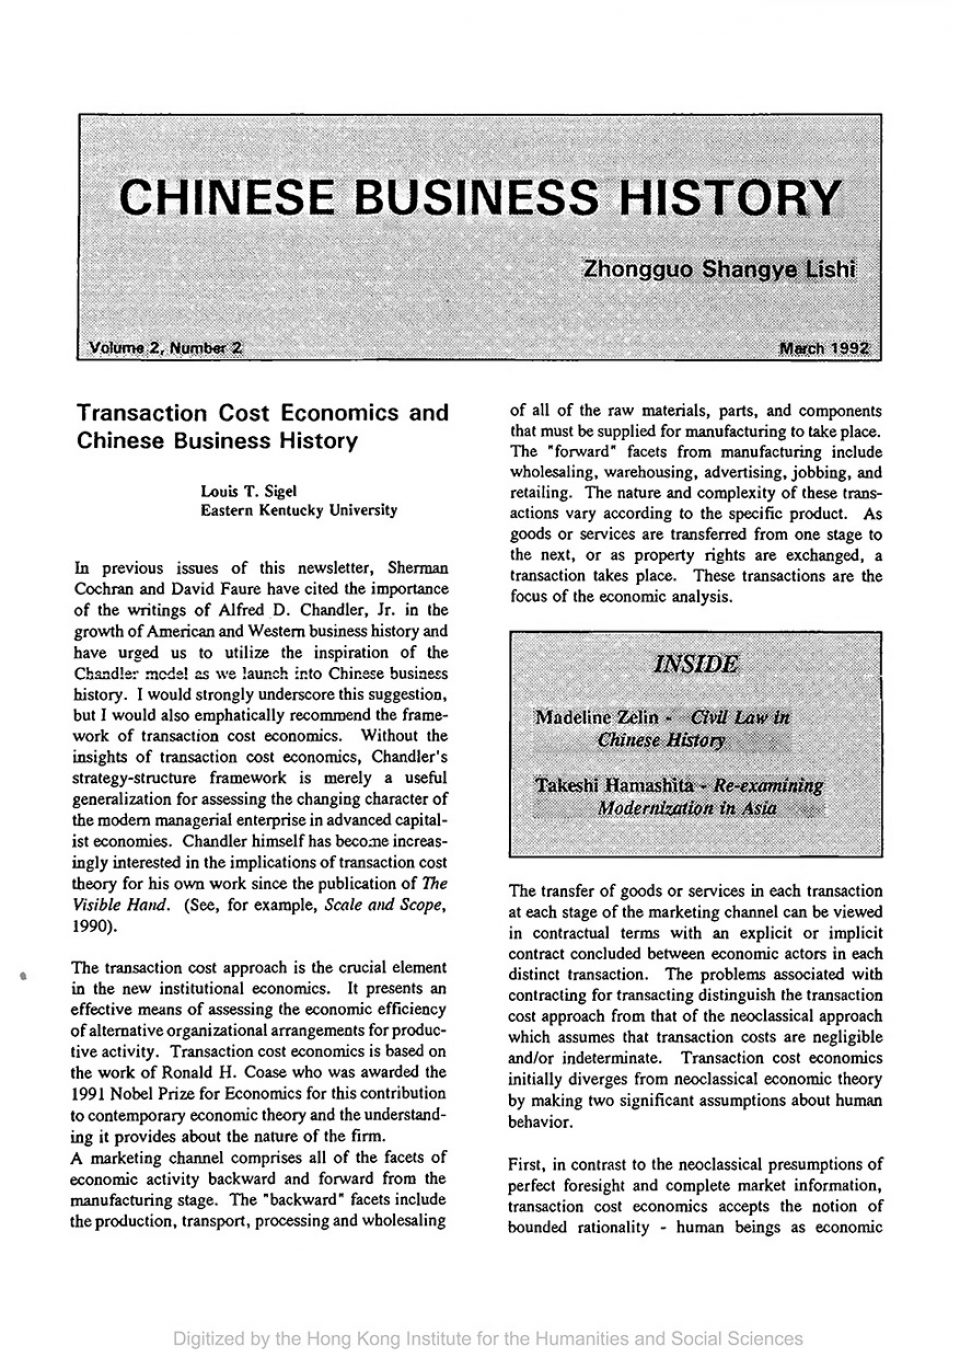 Cover of Chinese Business History Journal Volume 2, Number 2